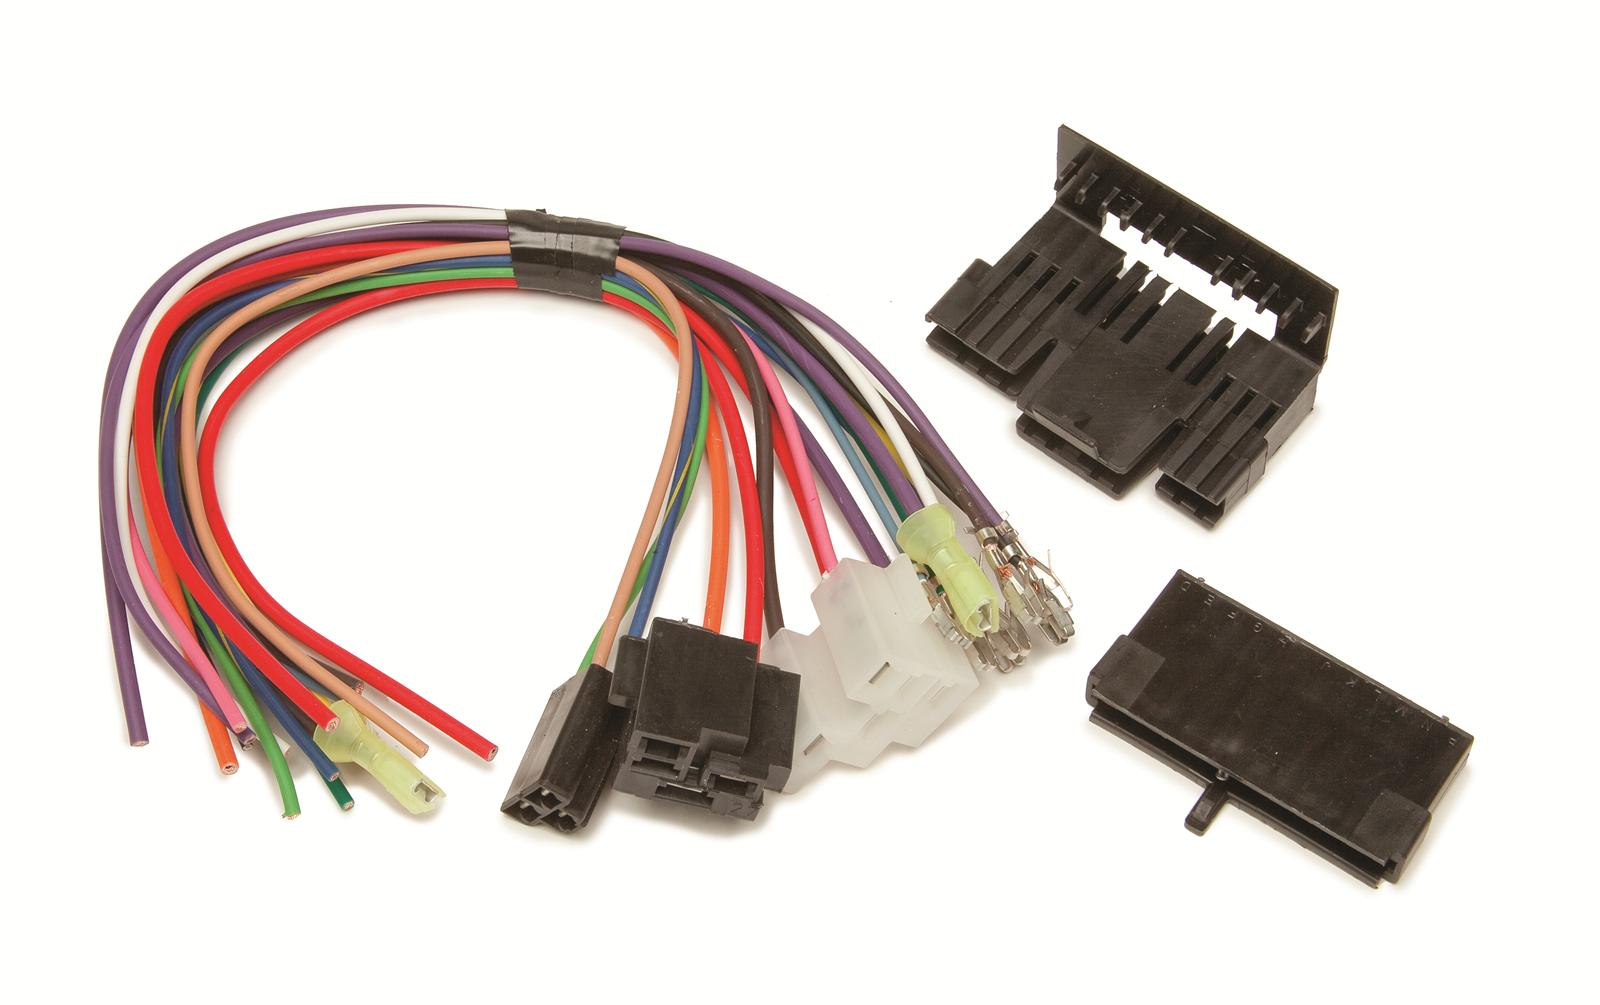 painless wiring 30805 wiring harness gm steering column dimmer universal kit ebay